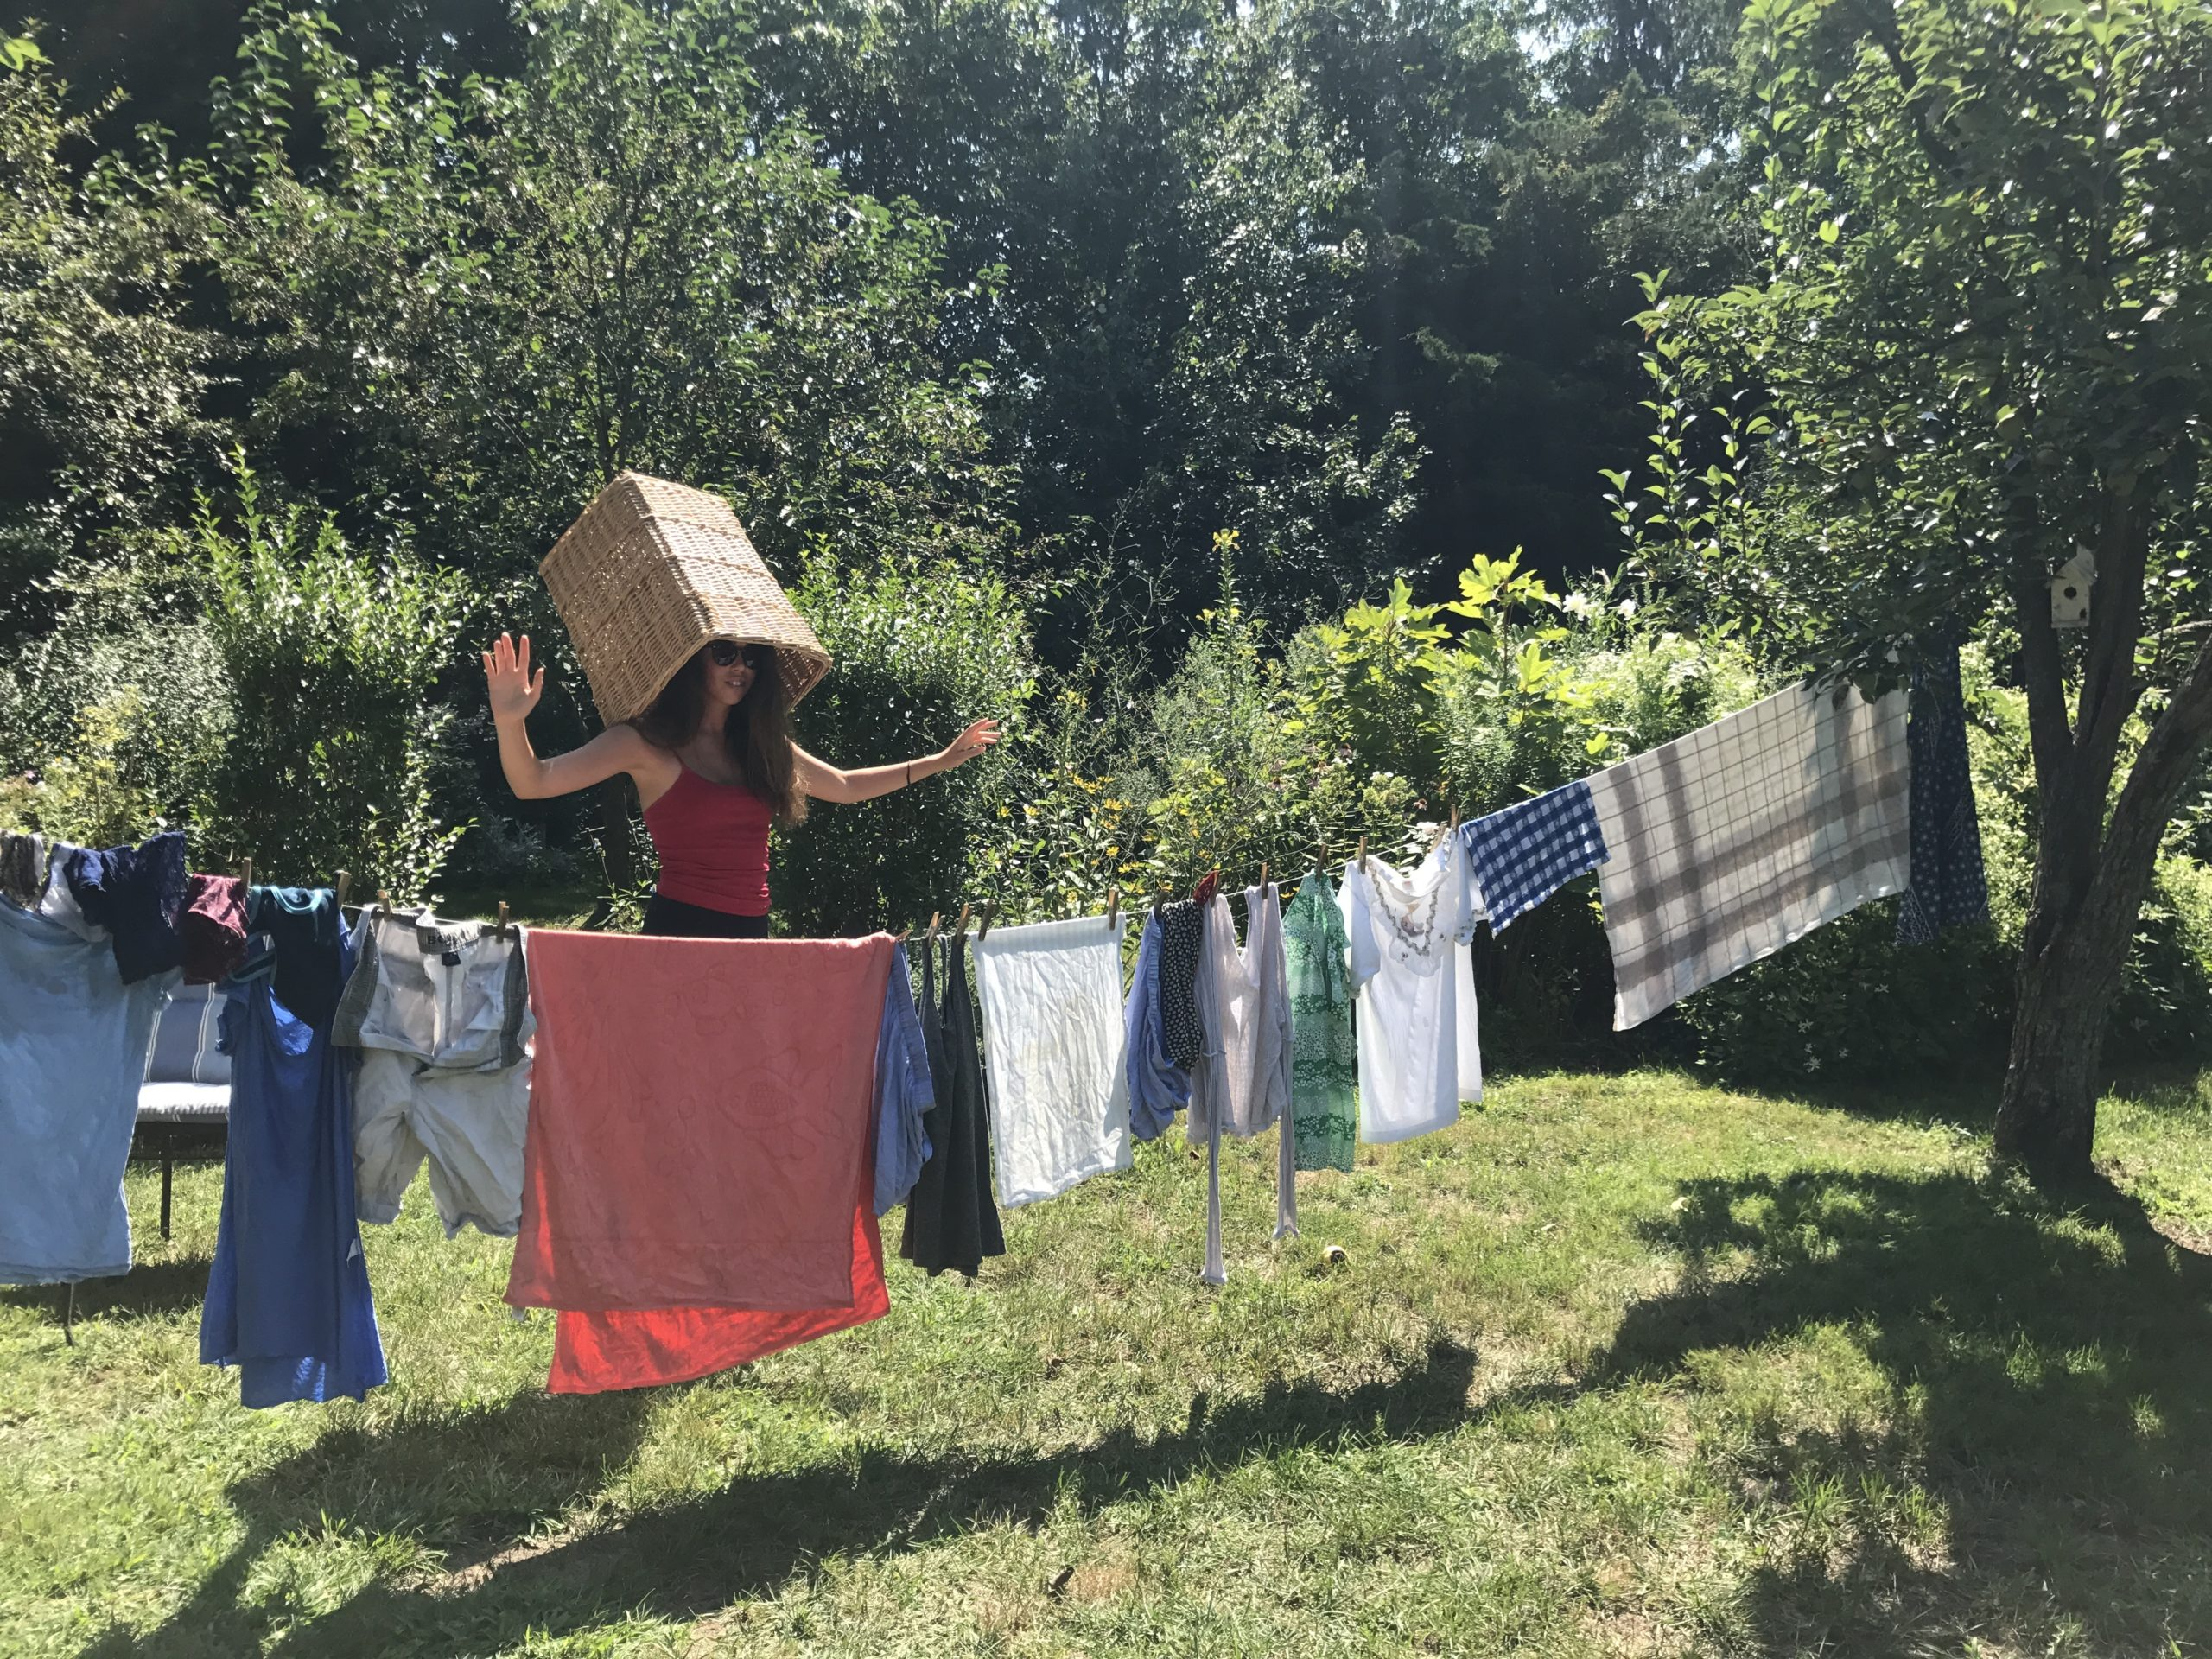 Teenager Carley Wootton demonstrates that air drying laundry tree-to-tree isn't always done efficiently.